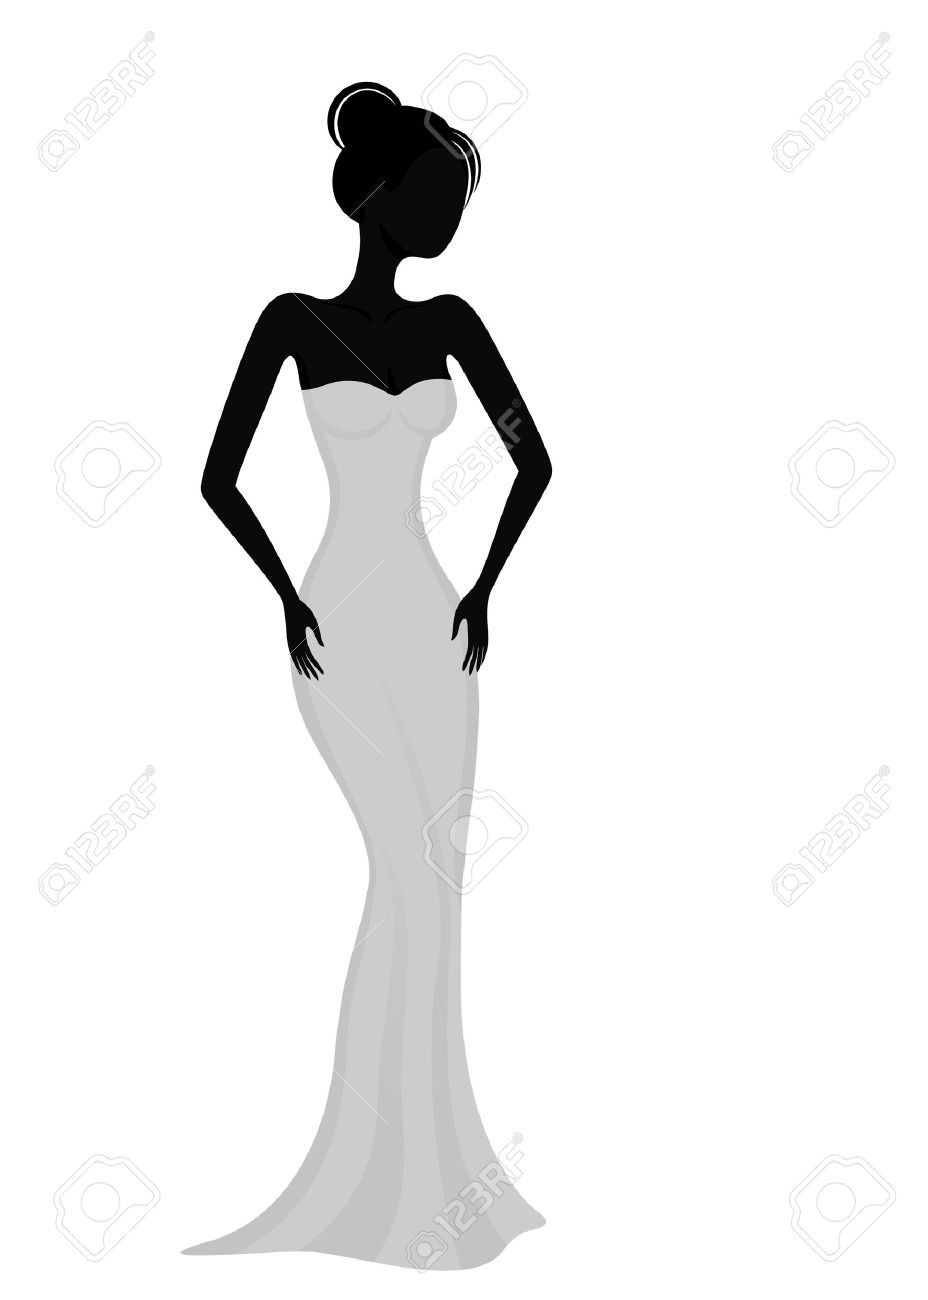 Prom Dress Cliparts, Stock Vector And Royalty Free Prom Dress Illustrations